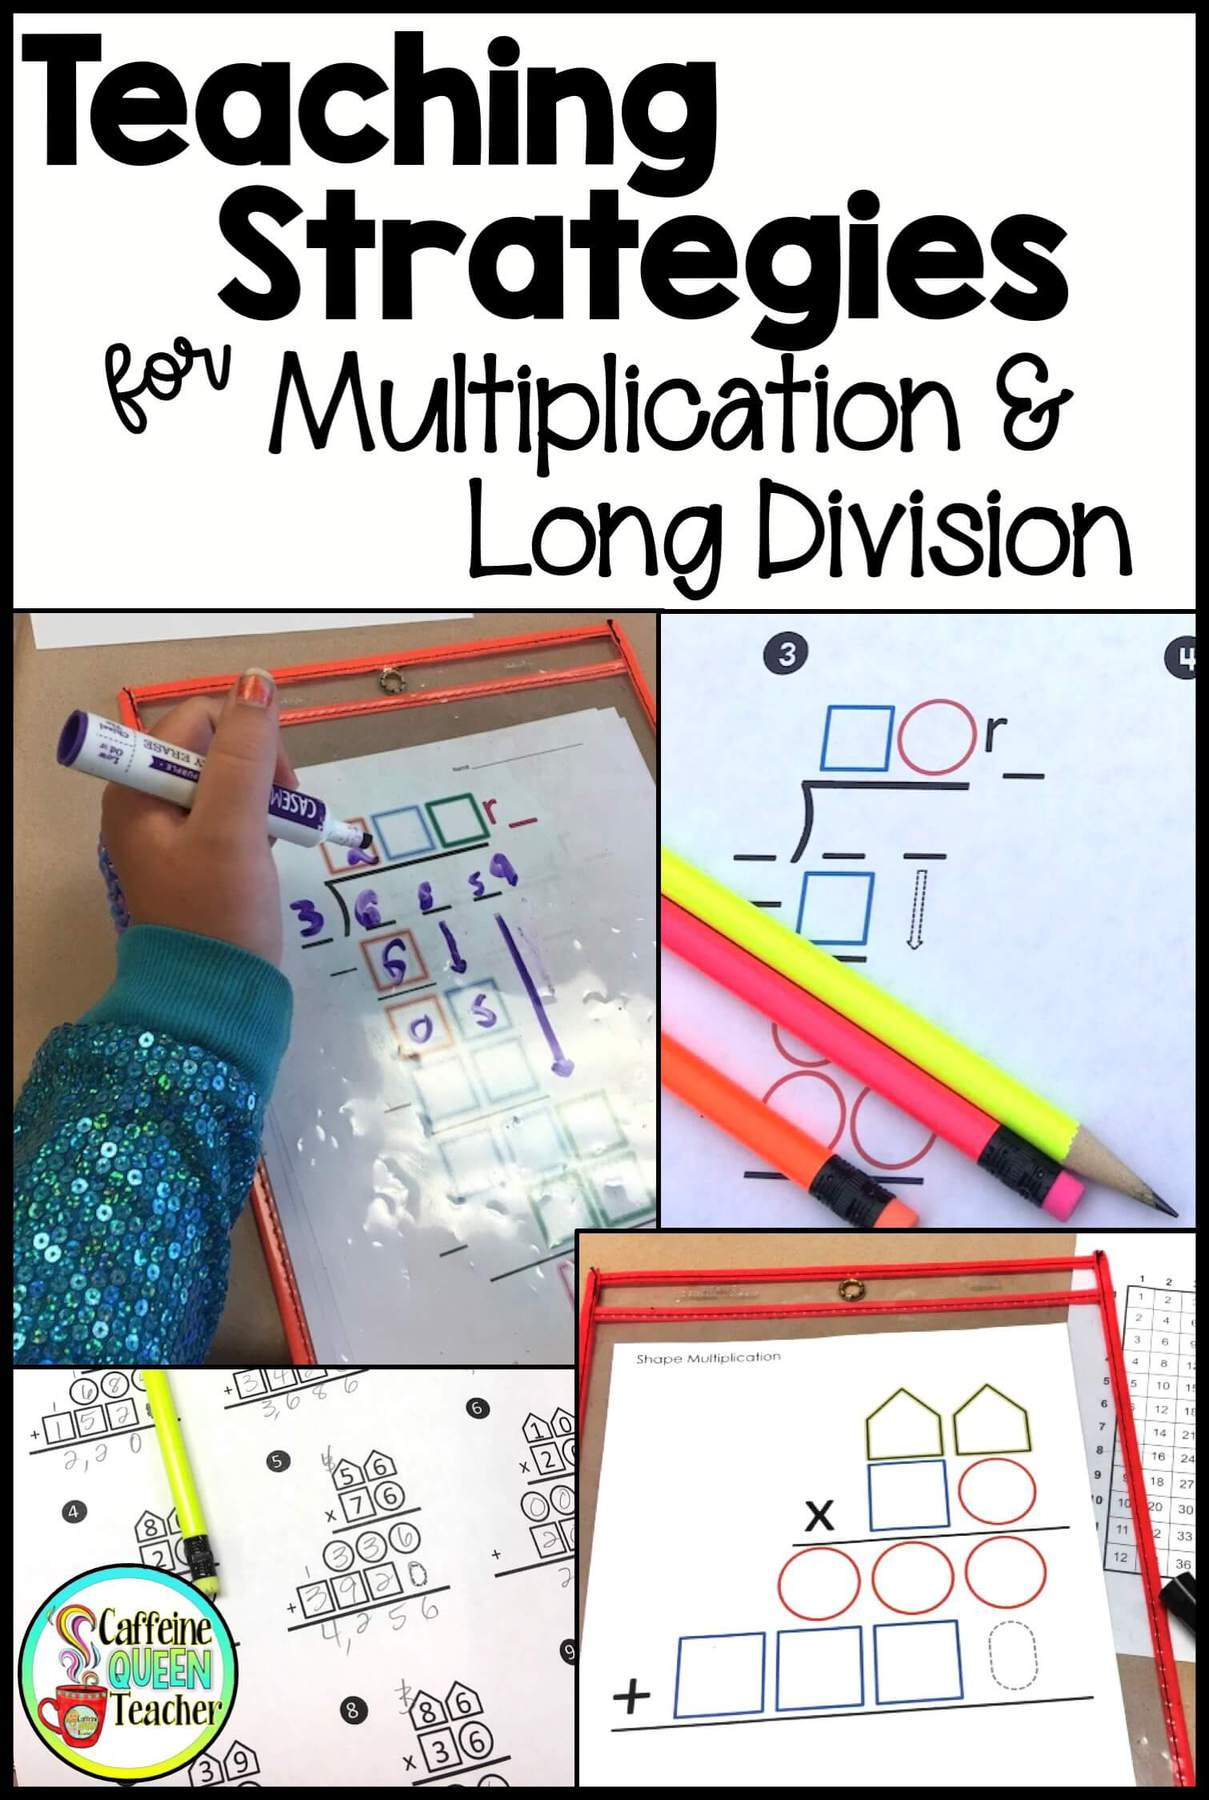 How to Teach Multi-Digit Multiplication and Long Division - Caffeine Queen  Teacher [ 1800 x 1209 Pixel ]